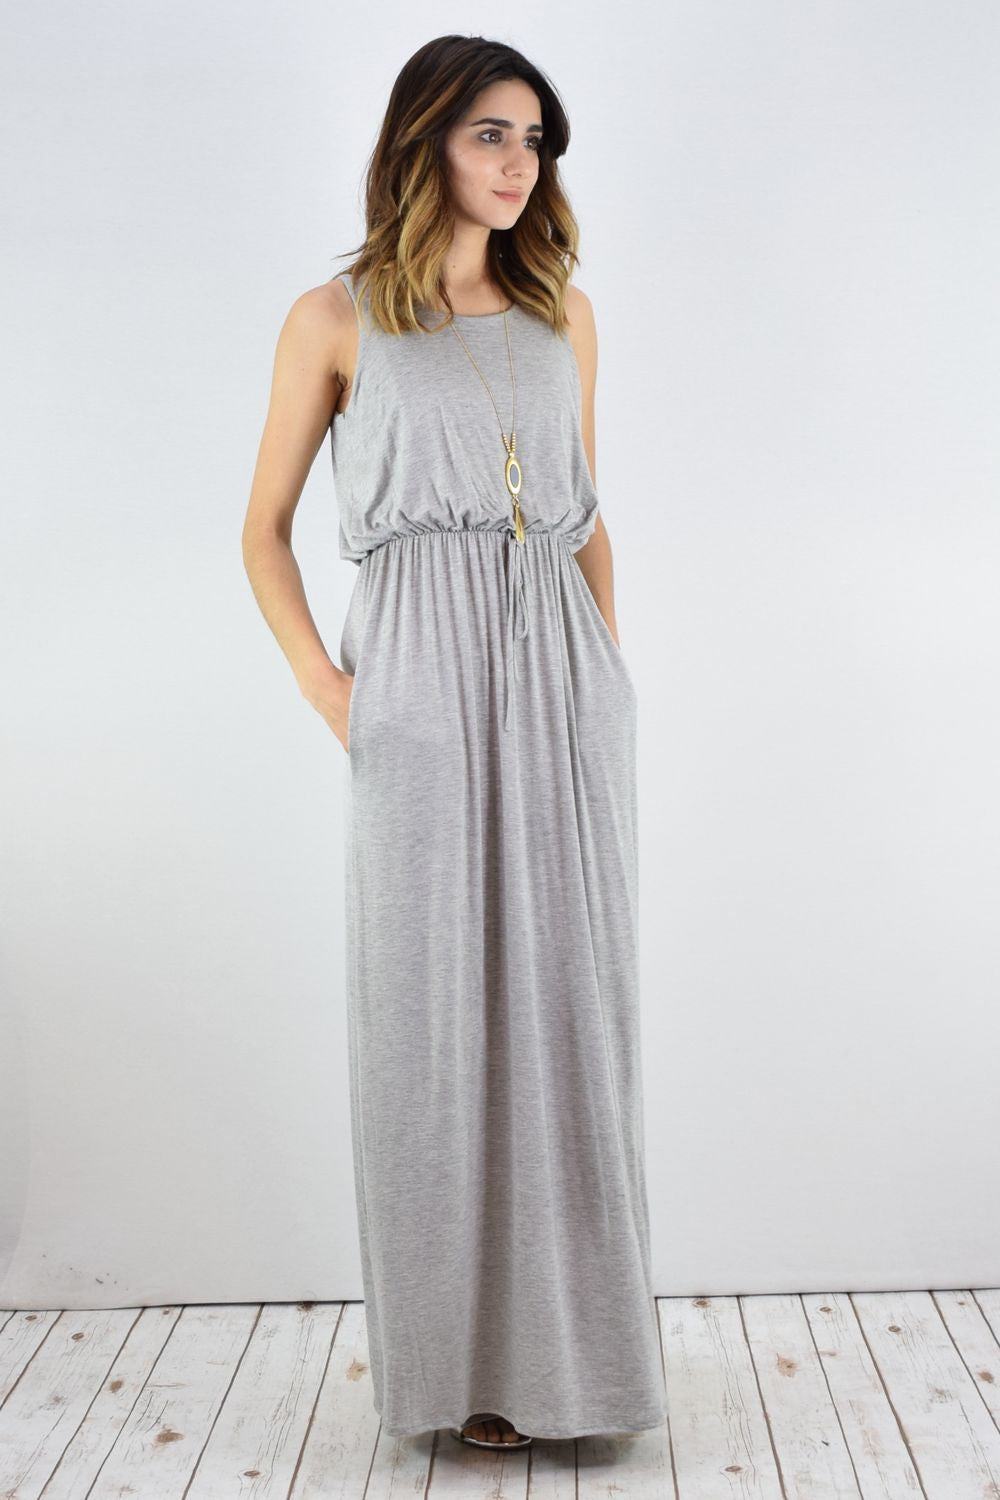 Solid Grey Sleeveless Blouson Maxi Dress